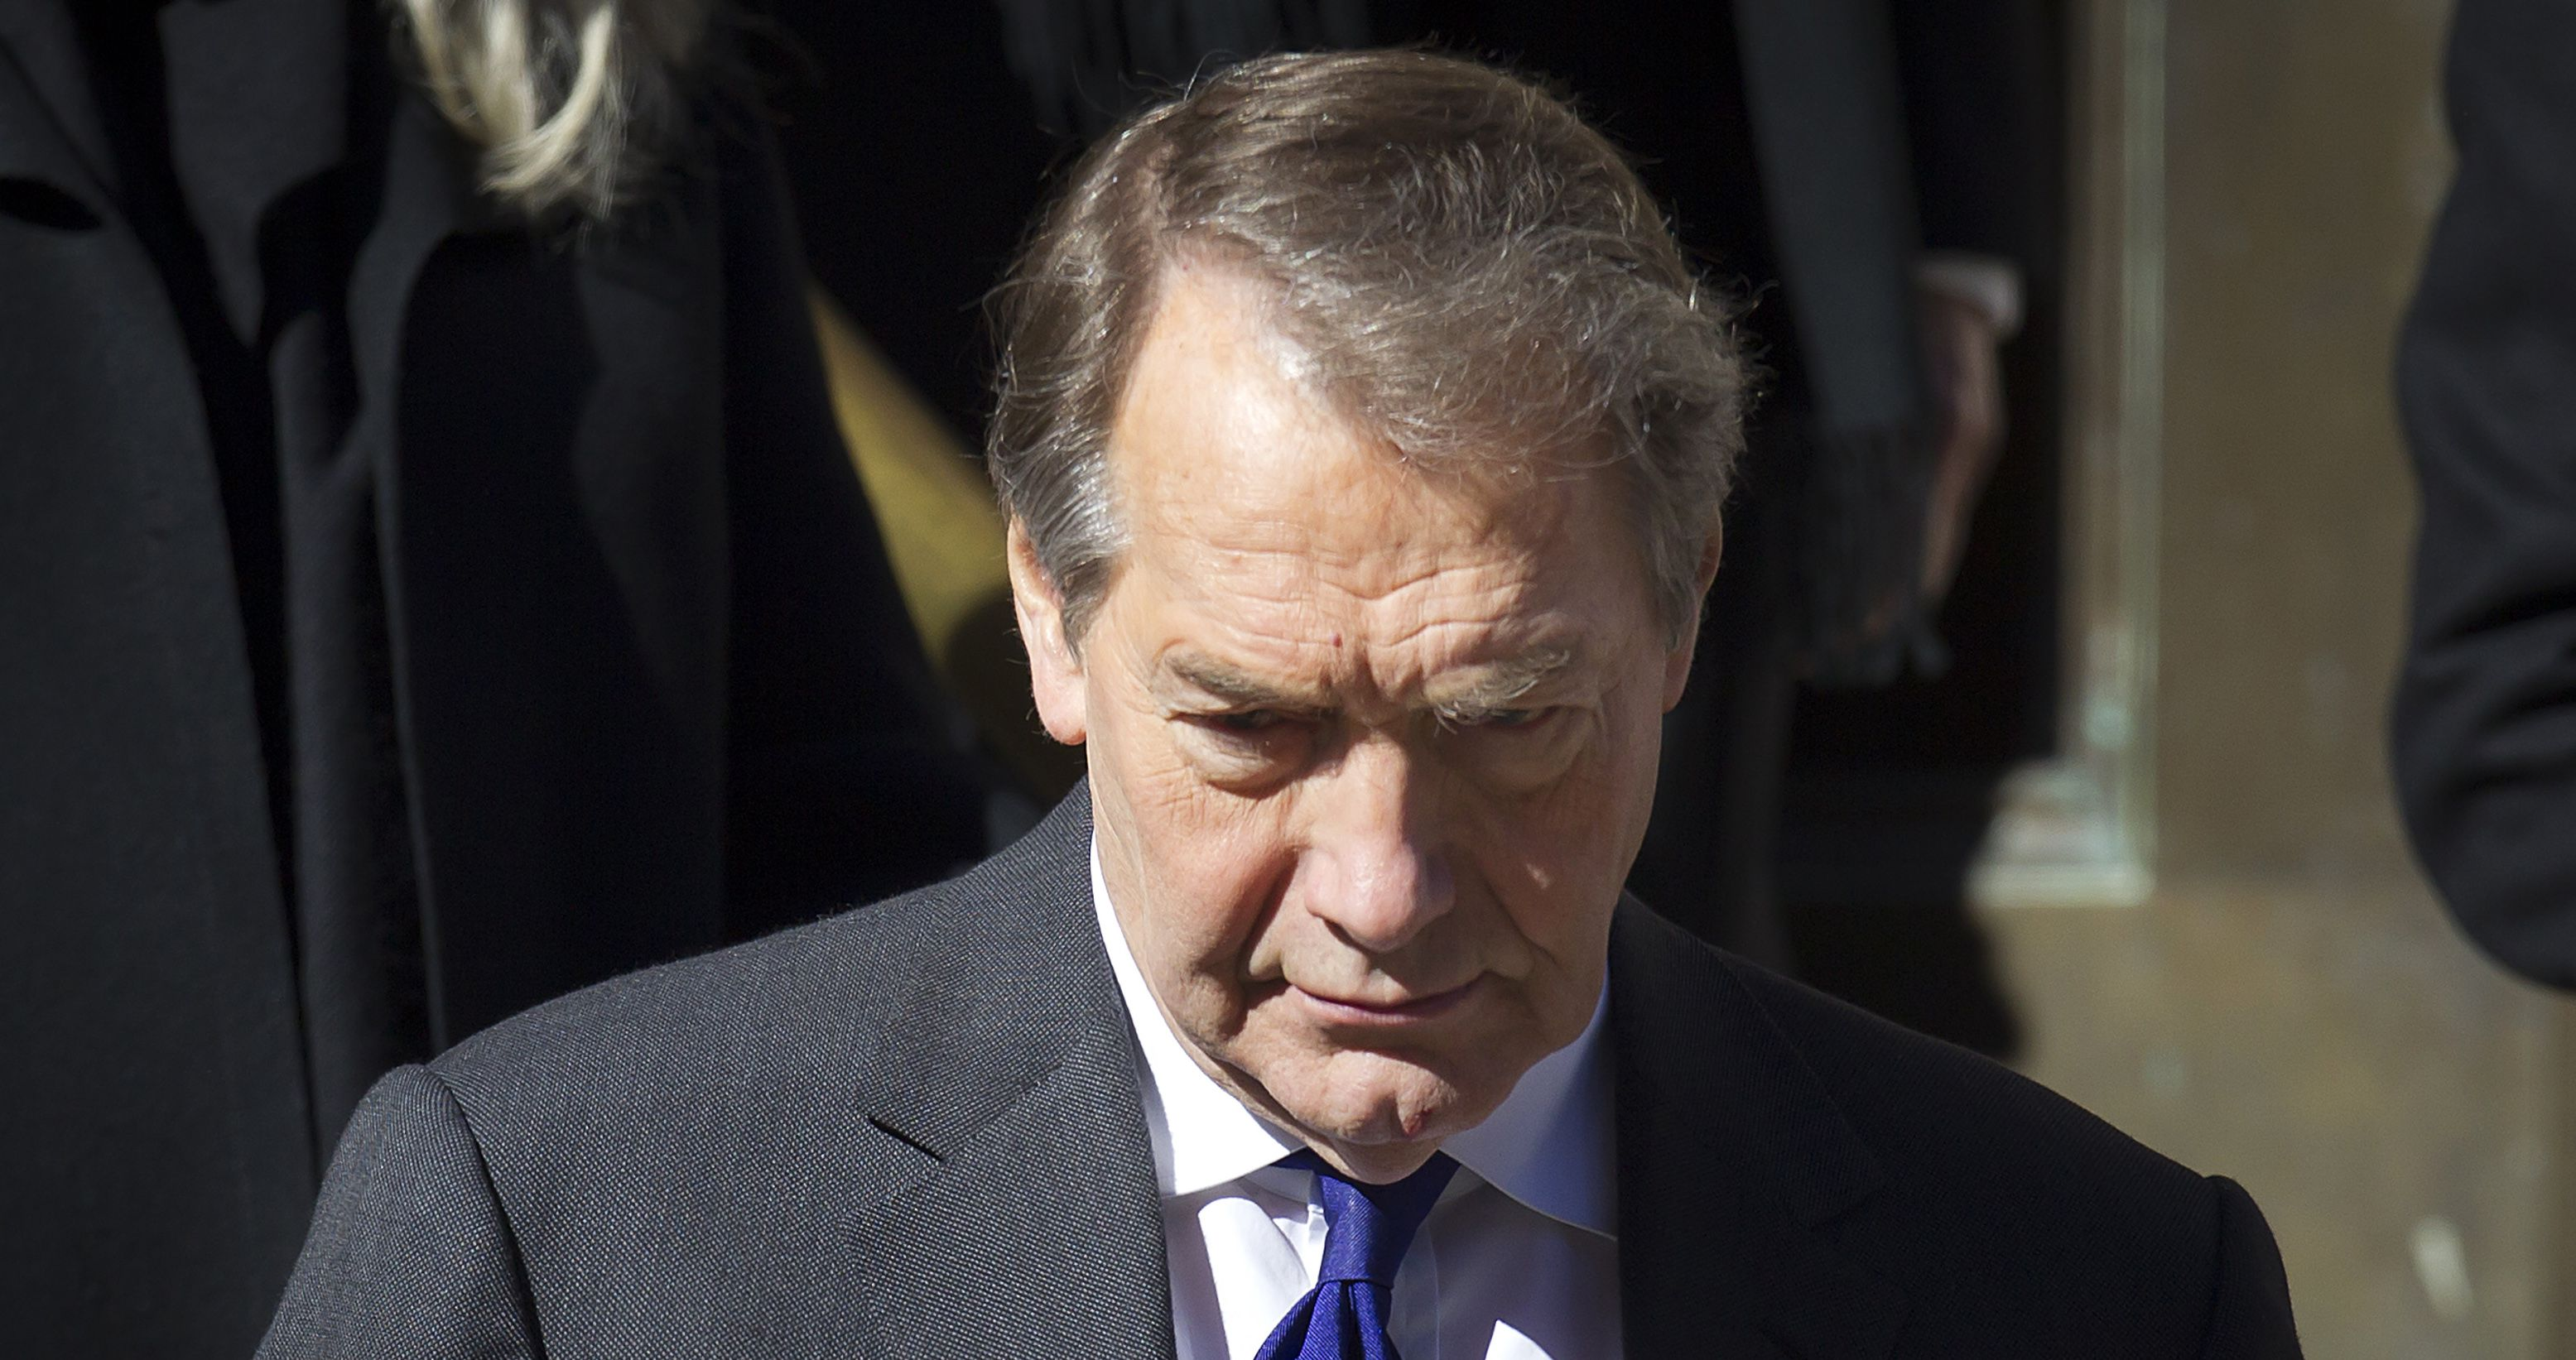 The CBS News president's email about firing Charlie Rose was almost perfect